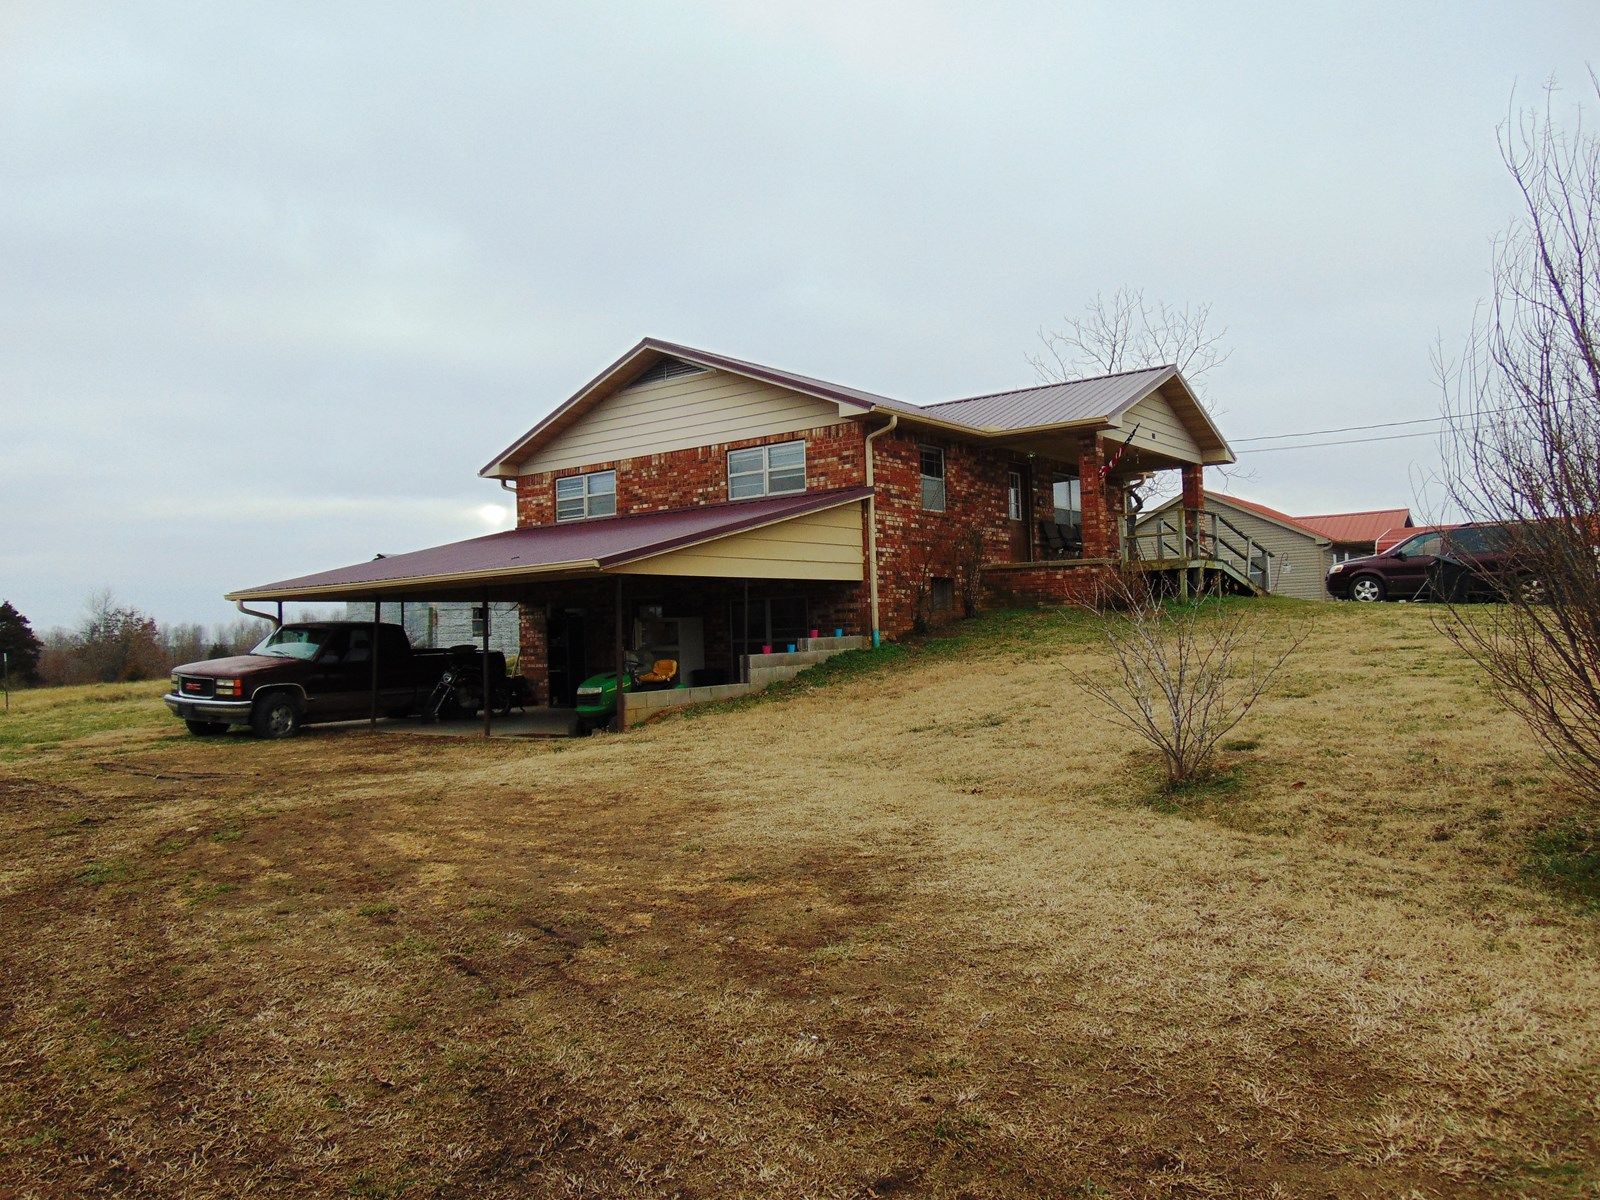 Two for price of one for sale in Viola, Arkansas